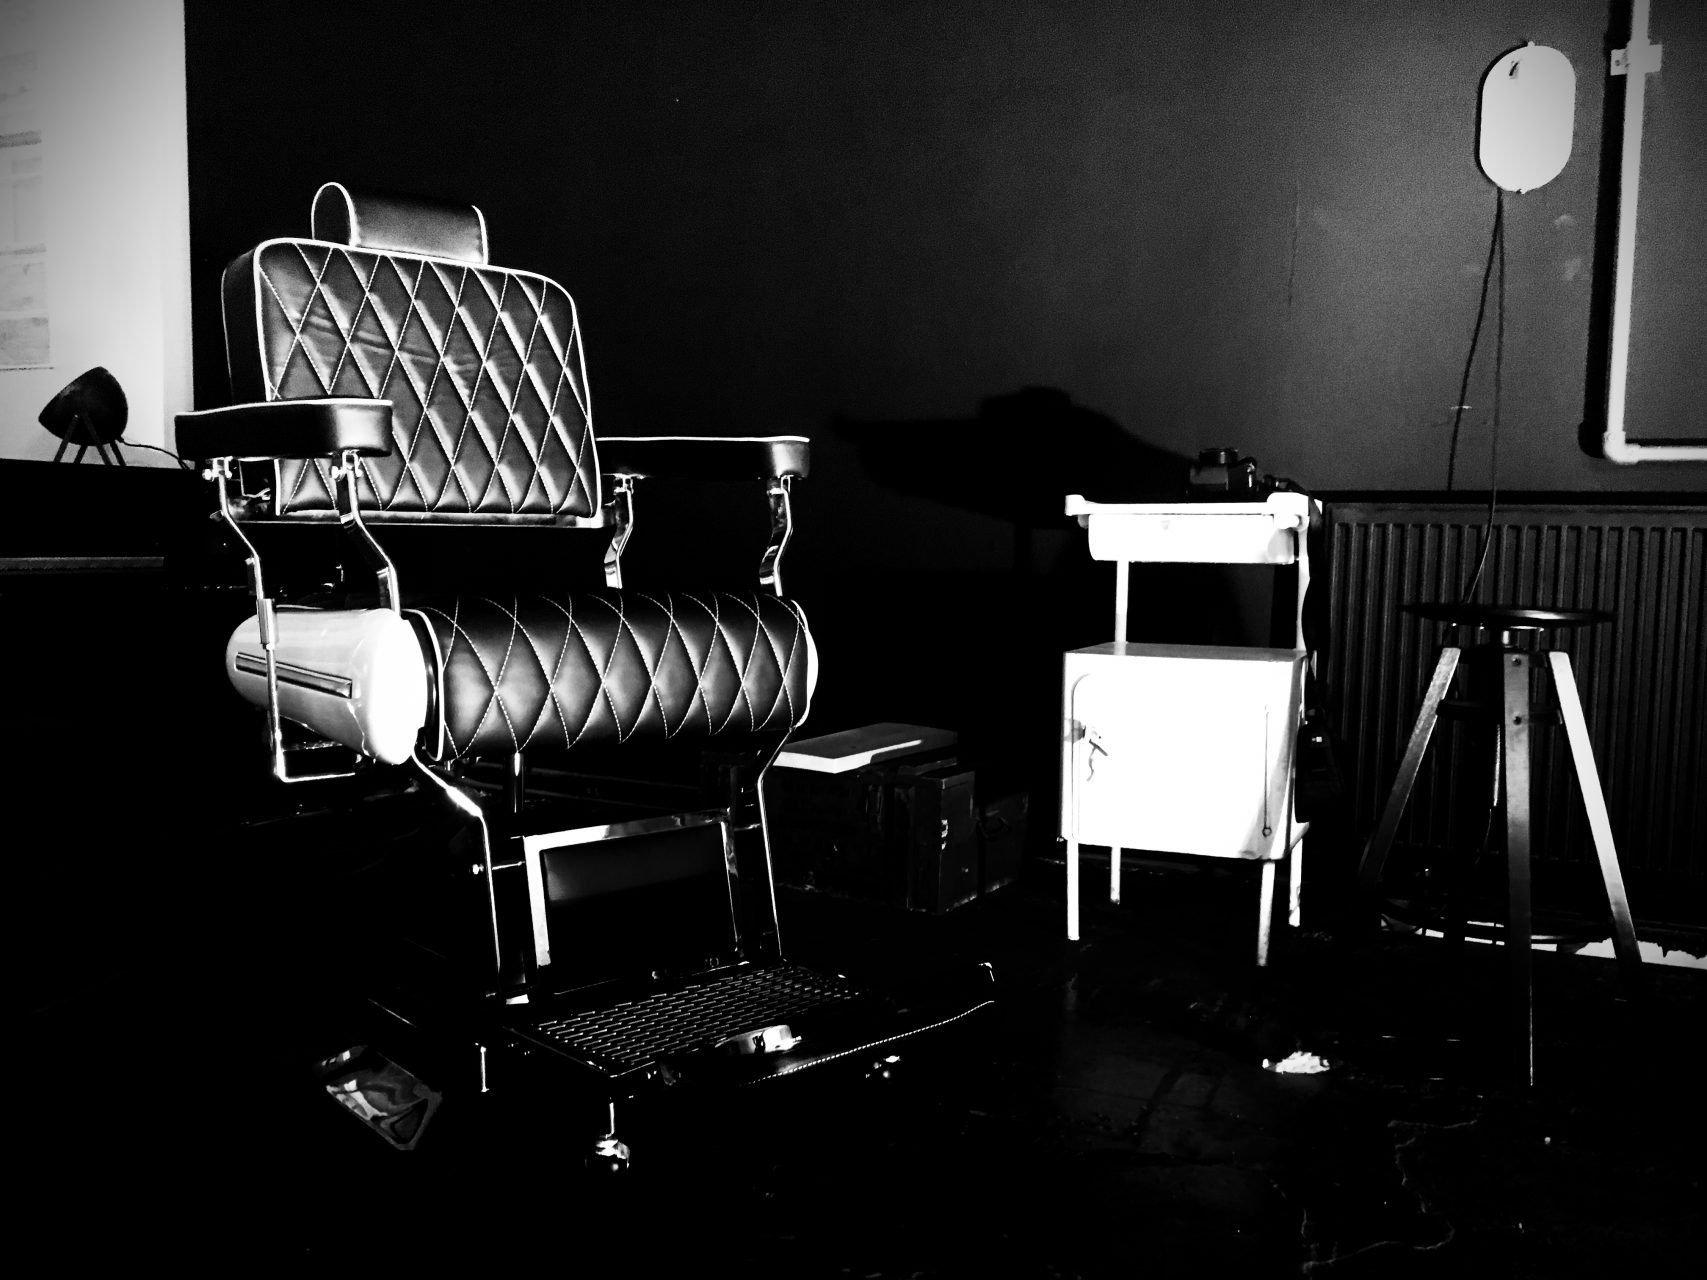 My Barberchair arrived today. Just a few days left till the opening. excited!